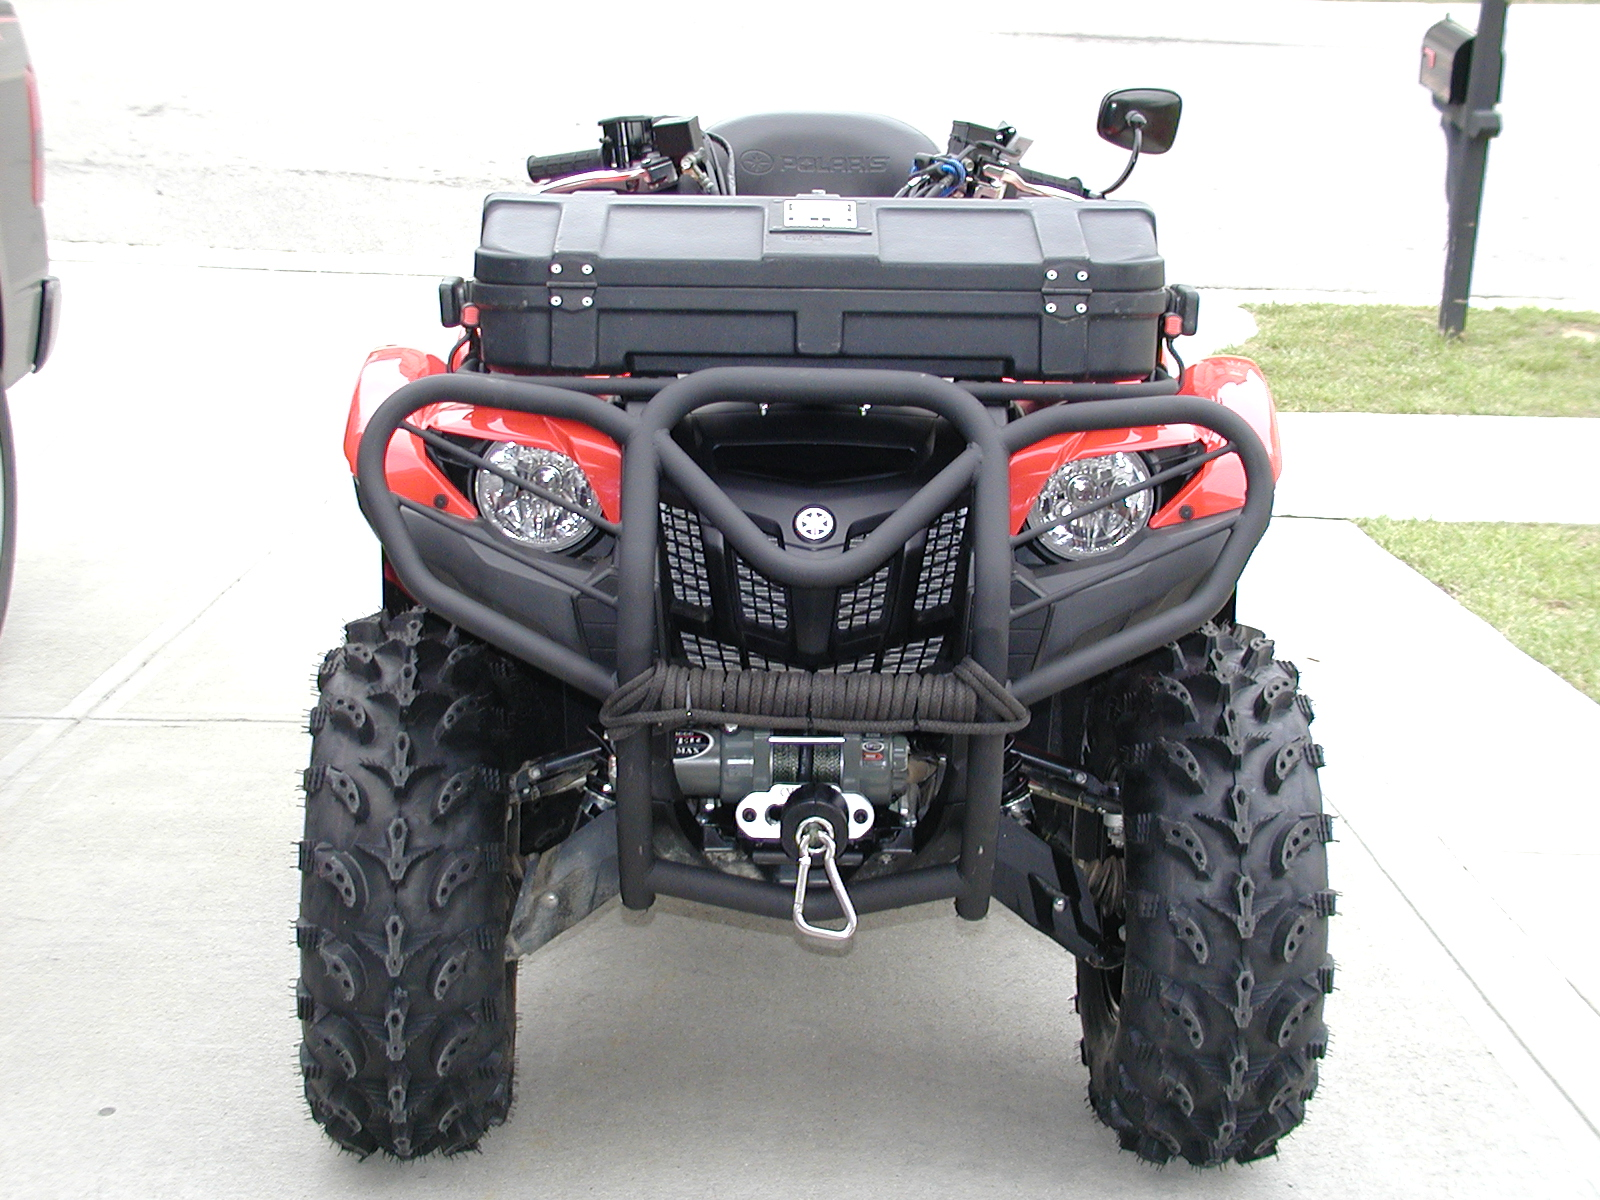 Overheating grizzly 700 yamaha grizzly atv forum click image for larger version name p1010108g views 5626 size 9120 sciox Choice Image